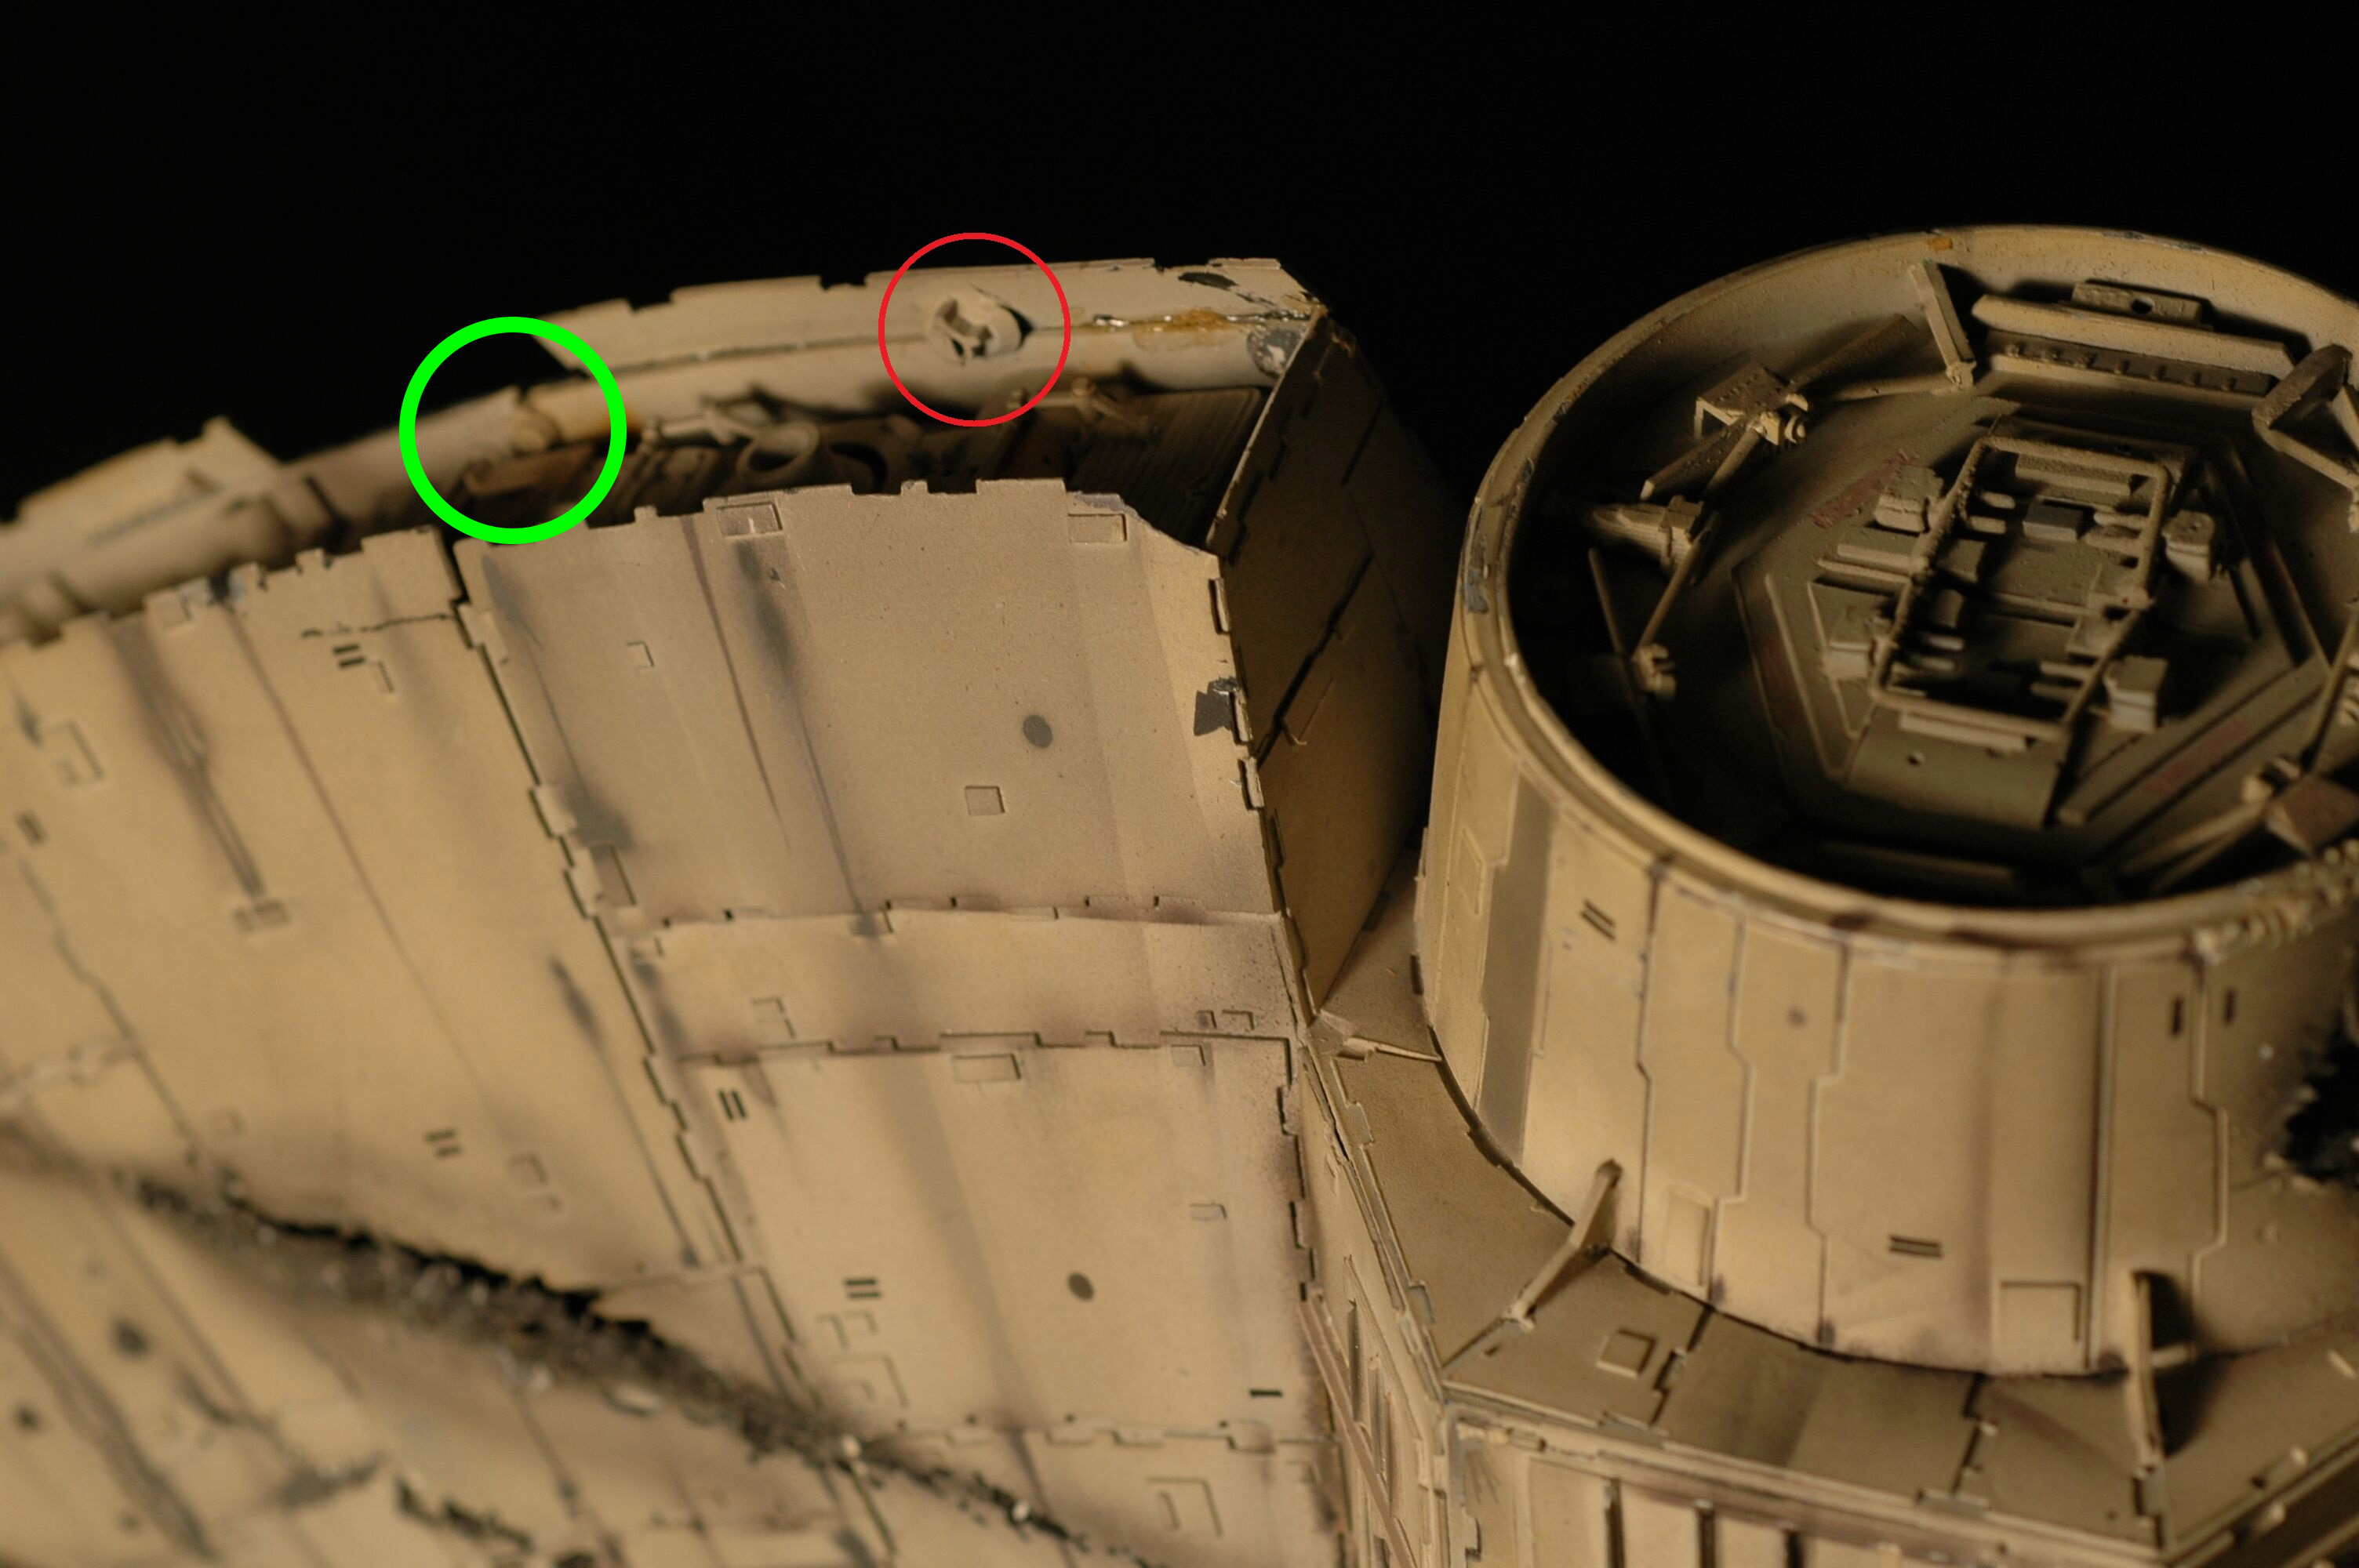 missed_one.jpg Download free STL file Deagostini Millennium Falcon Missing parts set • 3D printing template, boryelwoc